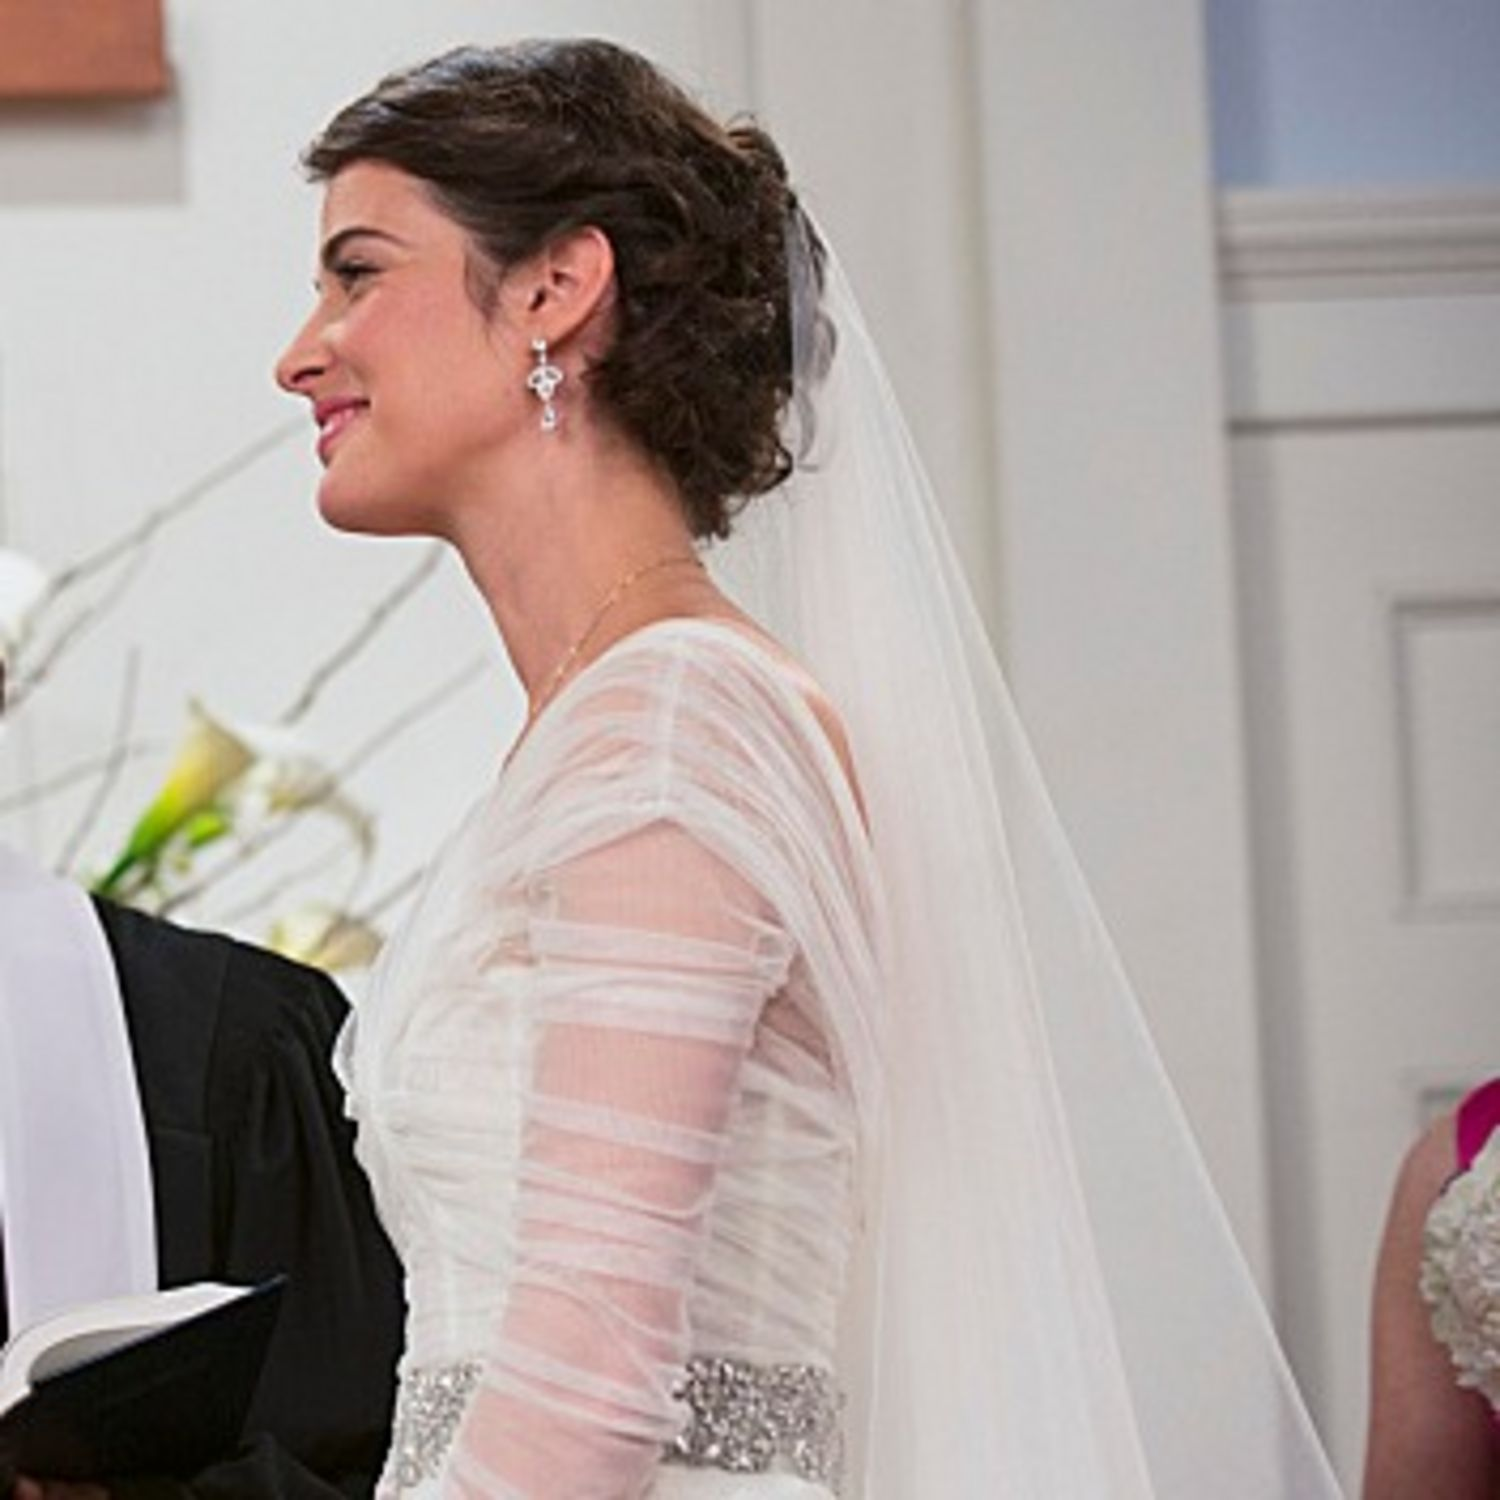 mothers wedding dresses Wondering Where to Find the HIMYM Wedding Dress Here Are All the Details